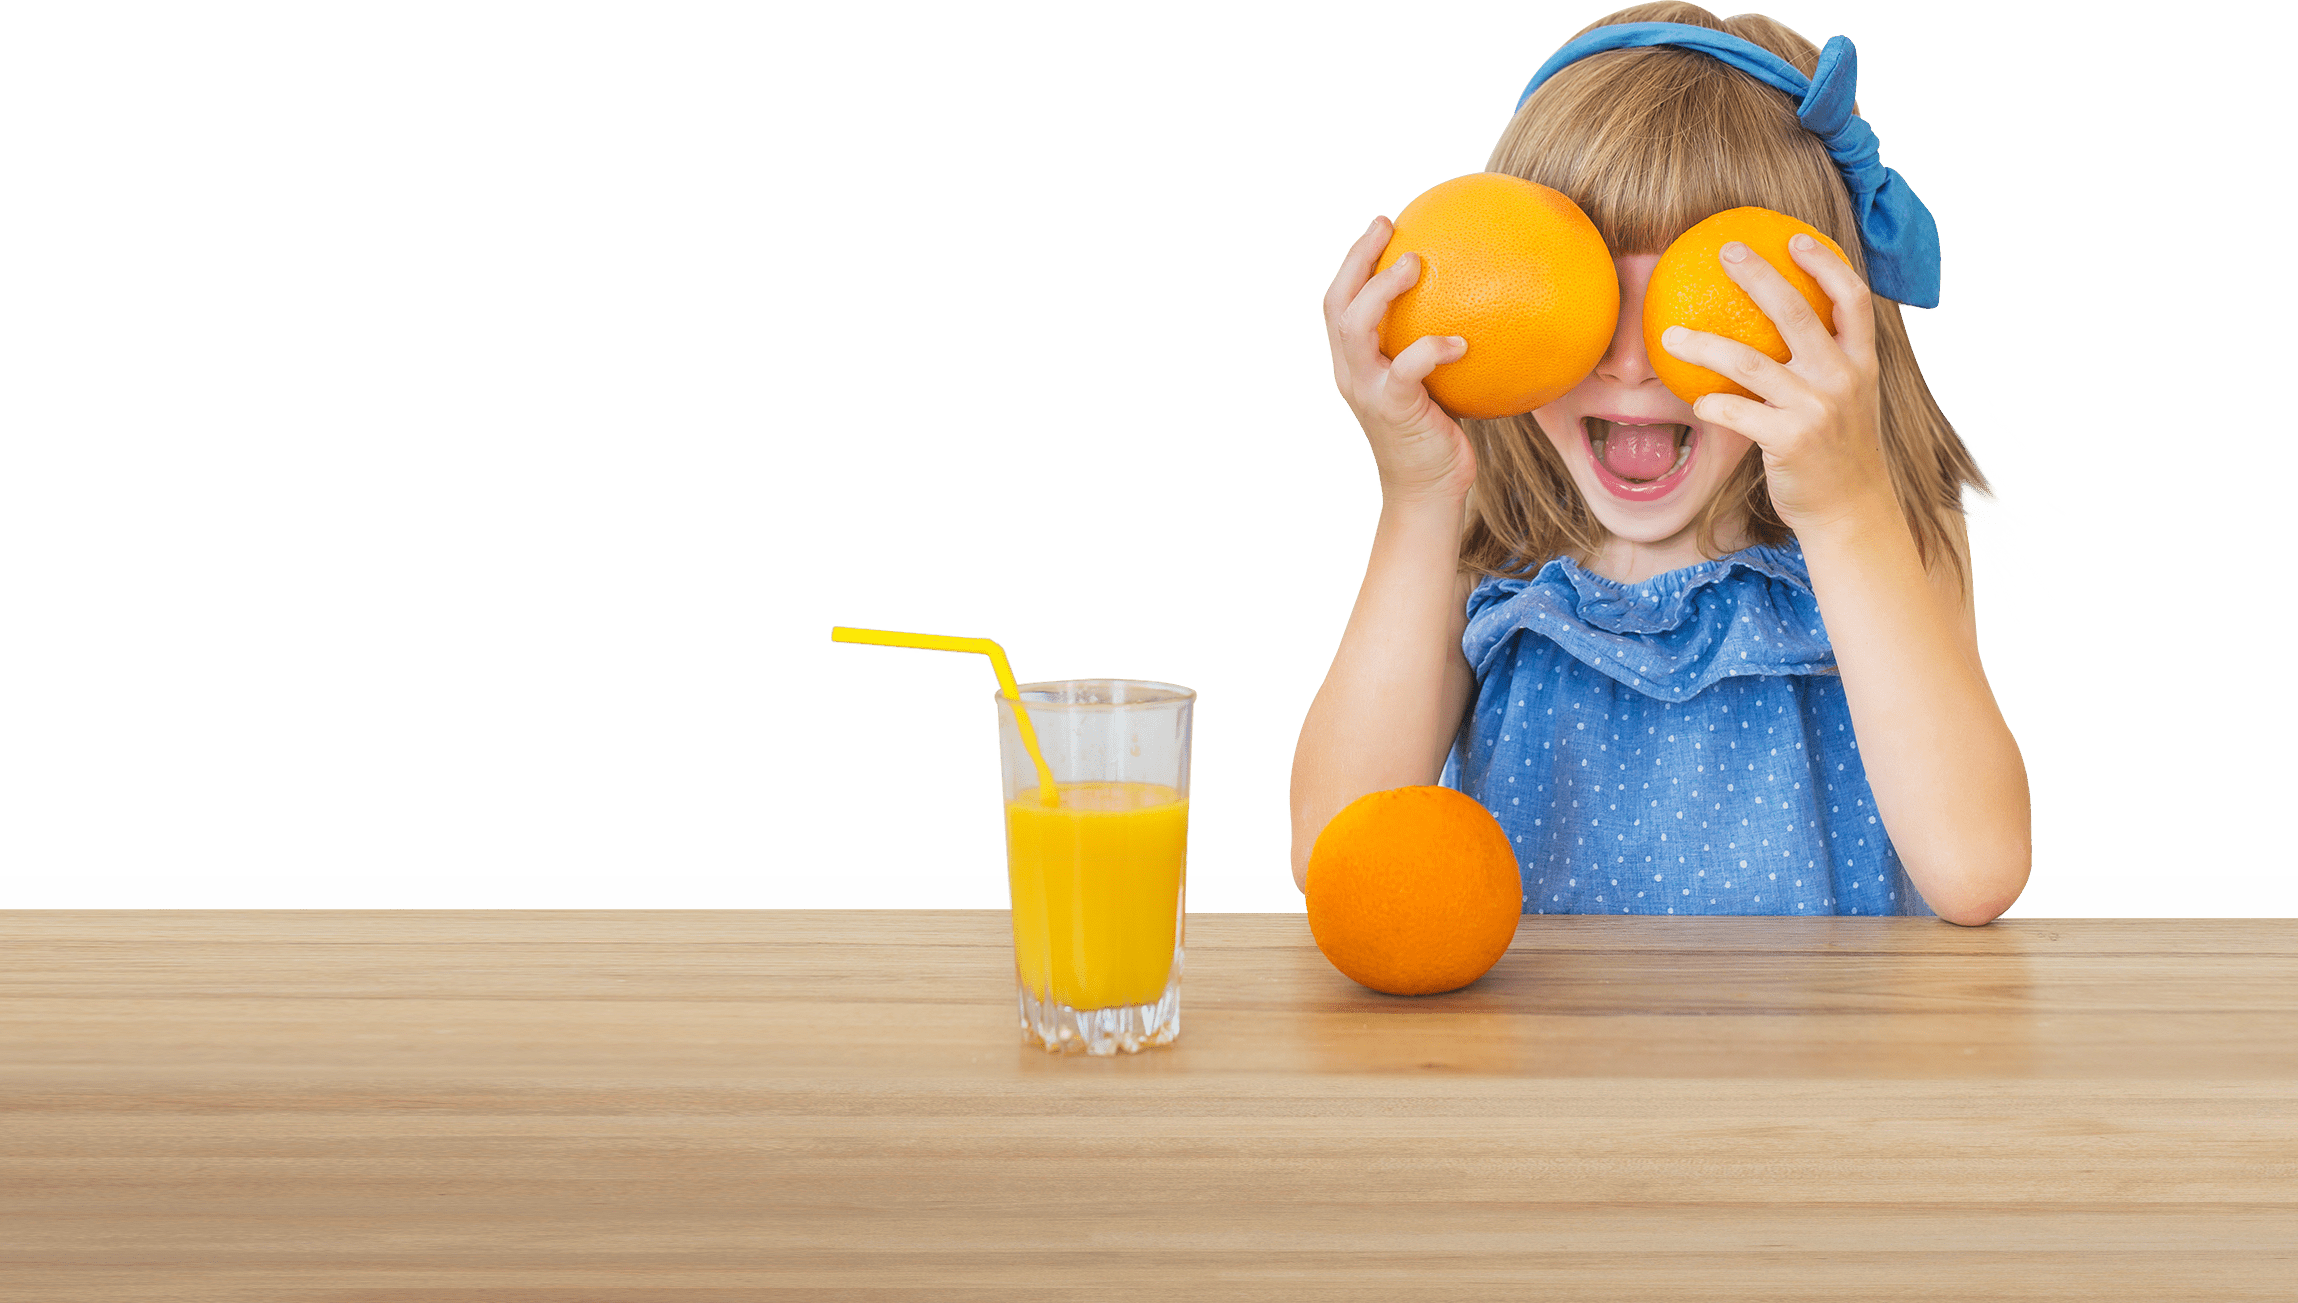 Girl with Oranges on her eyes